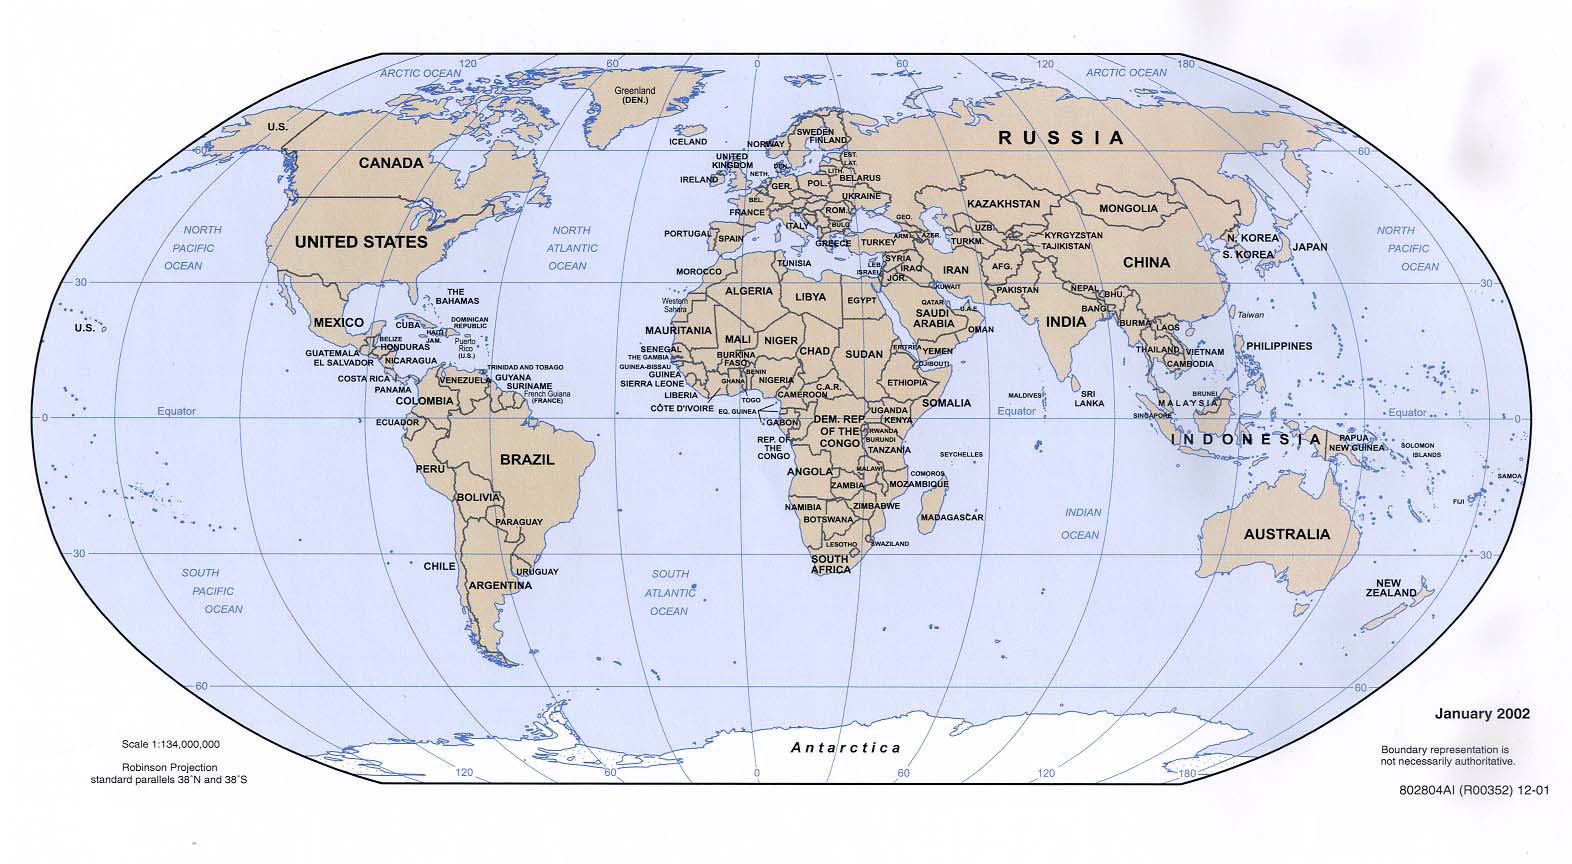 Maps Of The World World Maps Political Maps Geographical Maps - Map of the world detailed